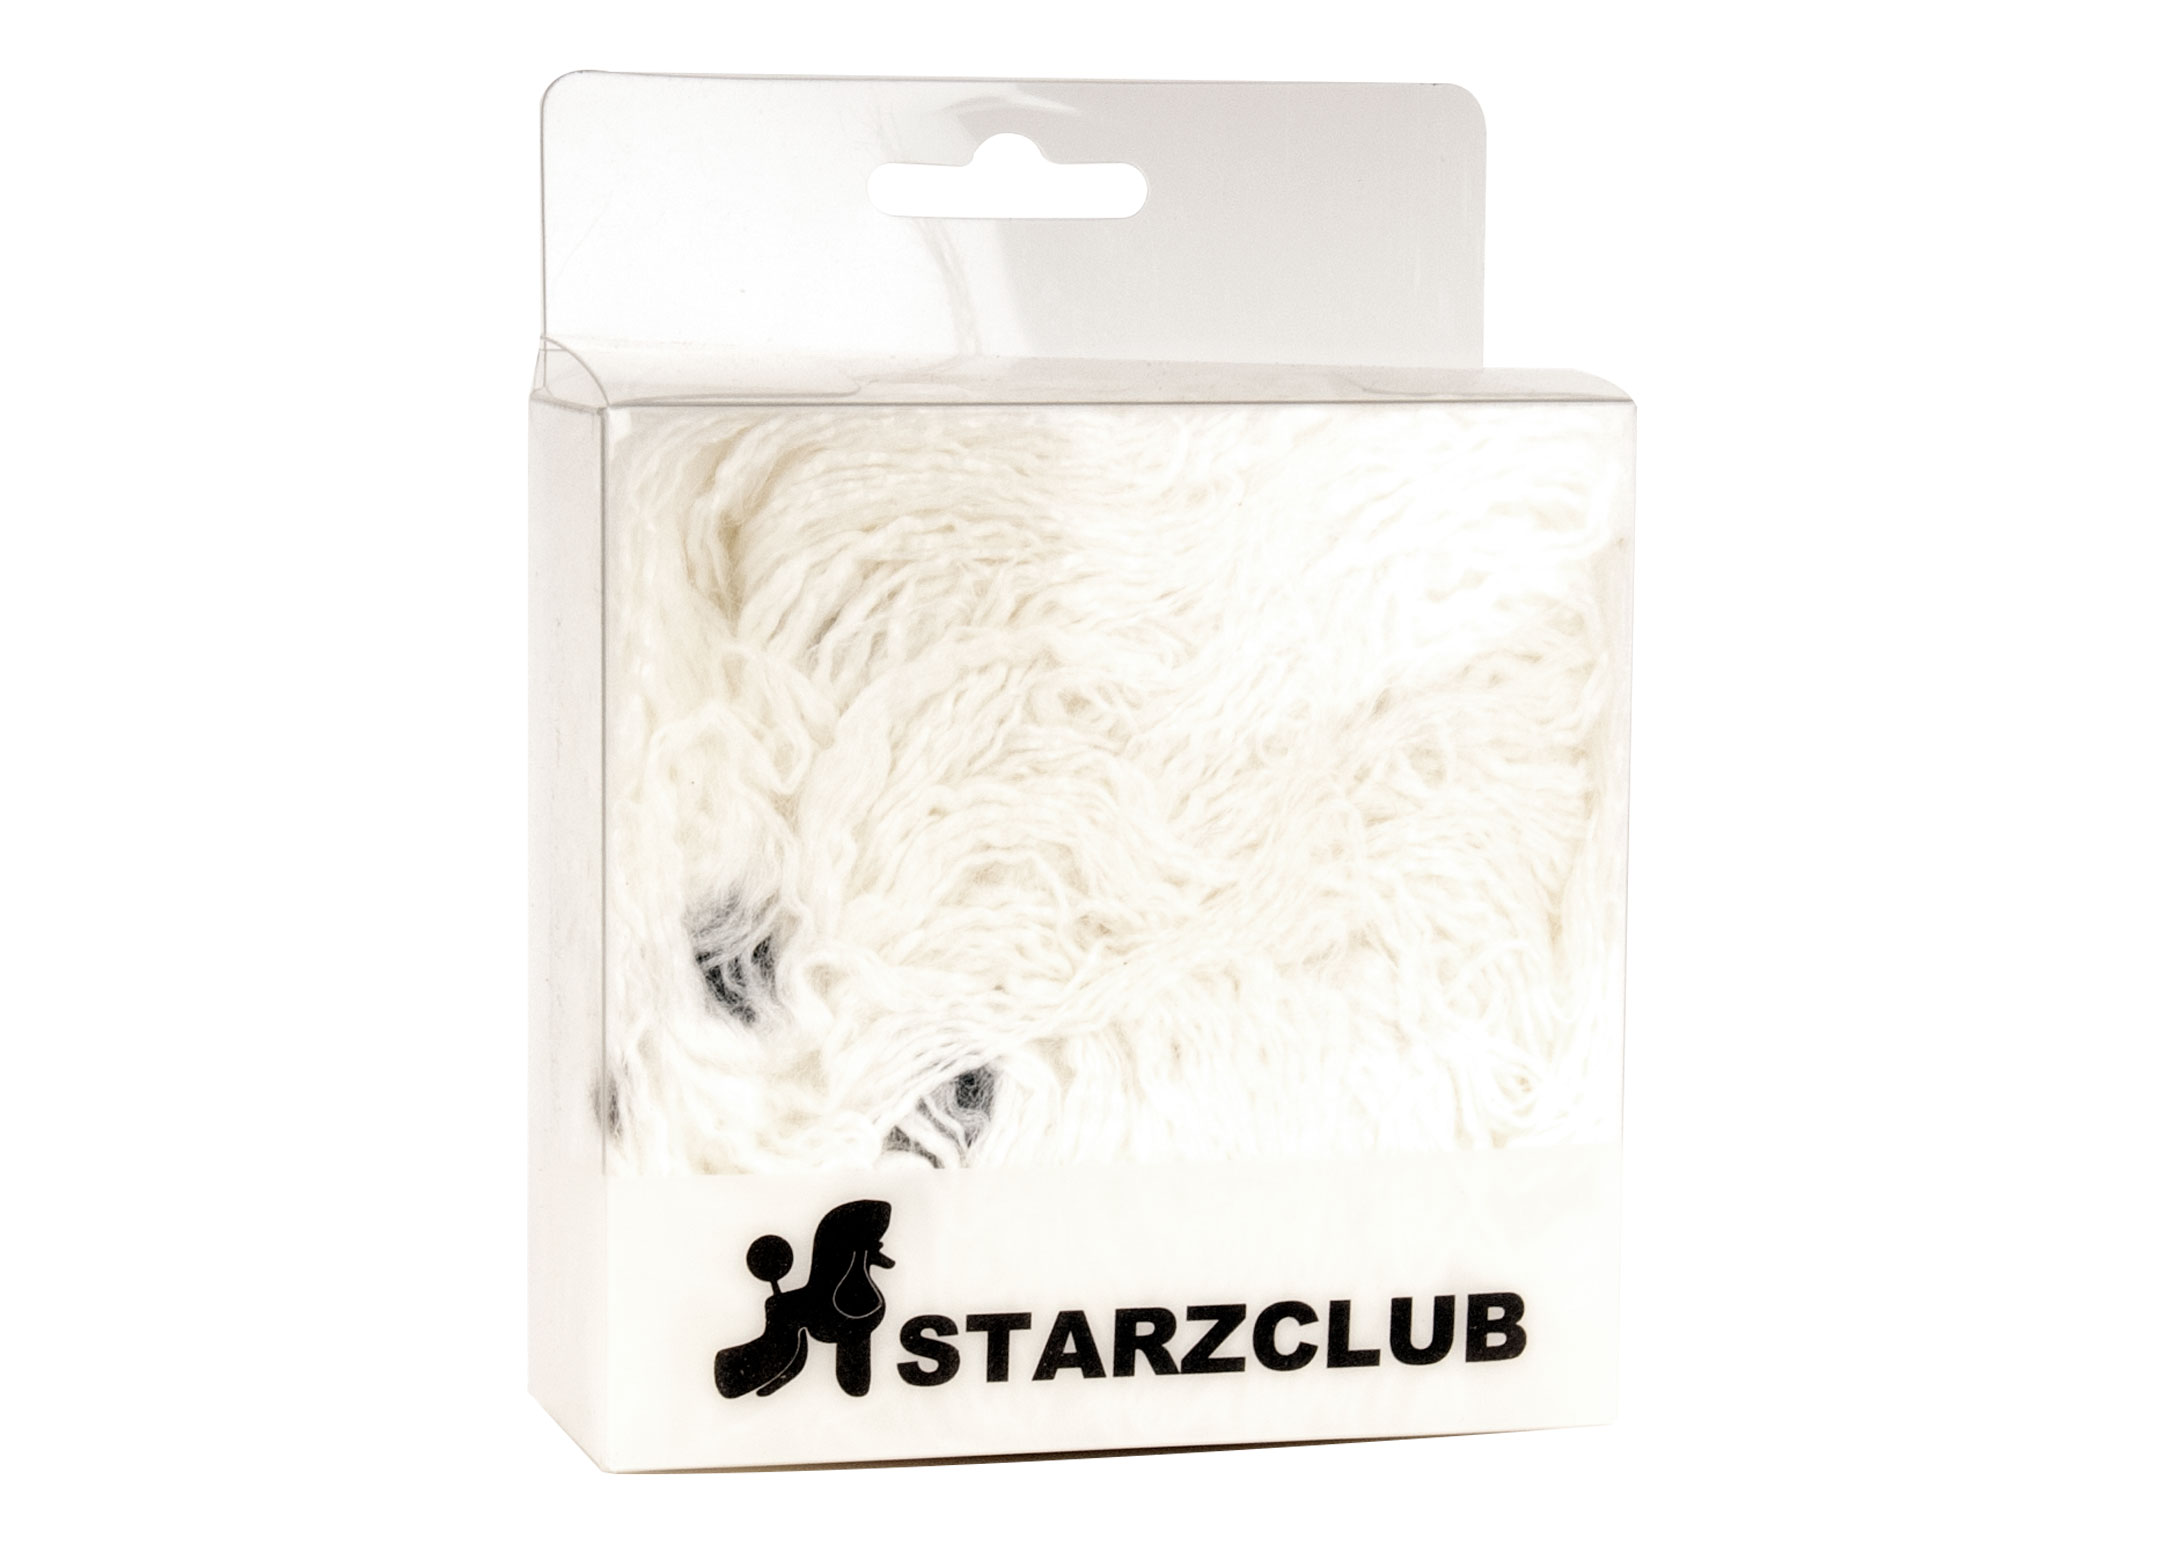 Starzclub Dog Head Hair Piece White for Training, Education and Display